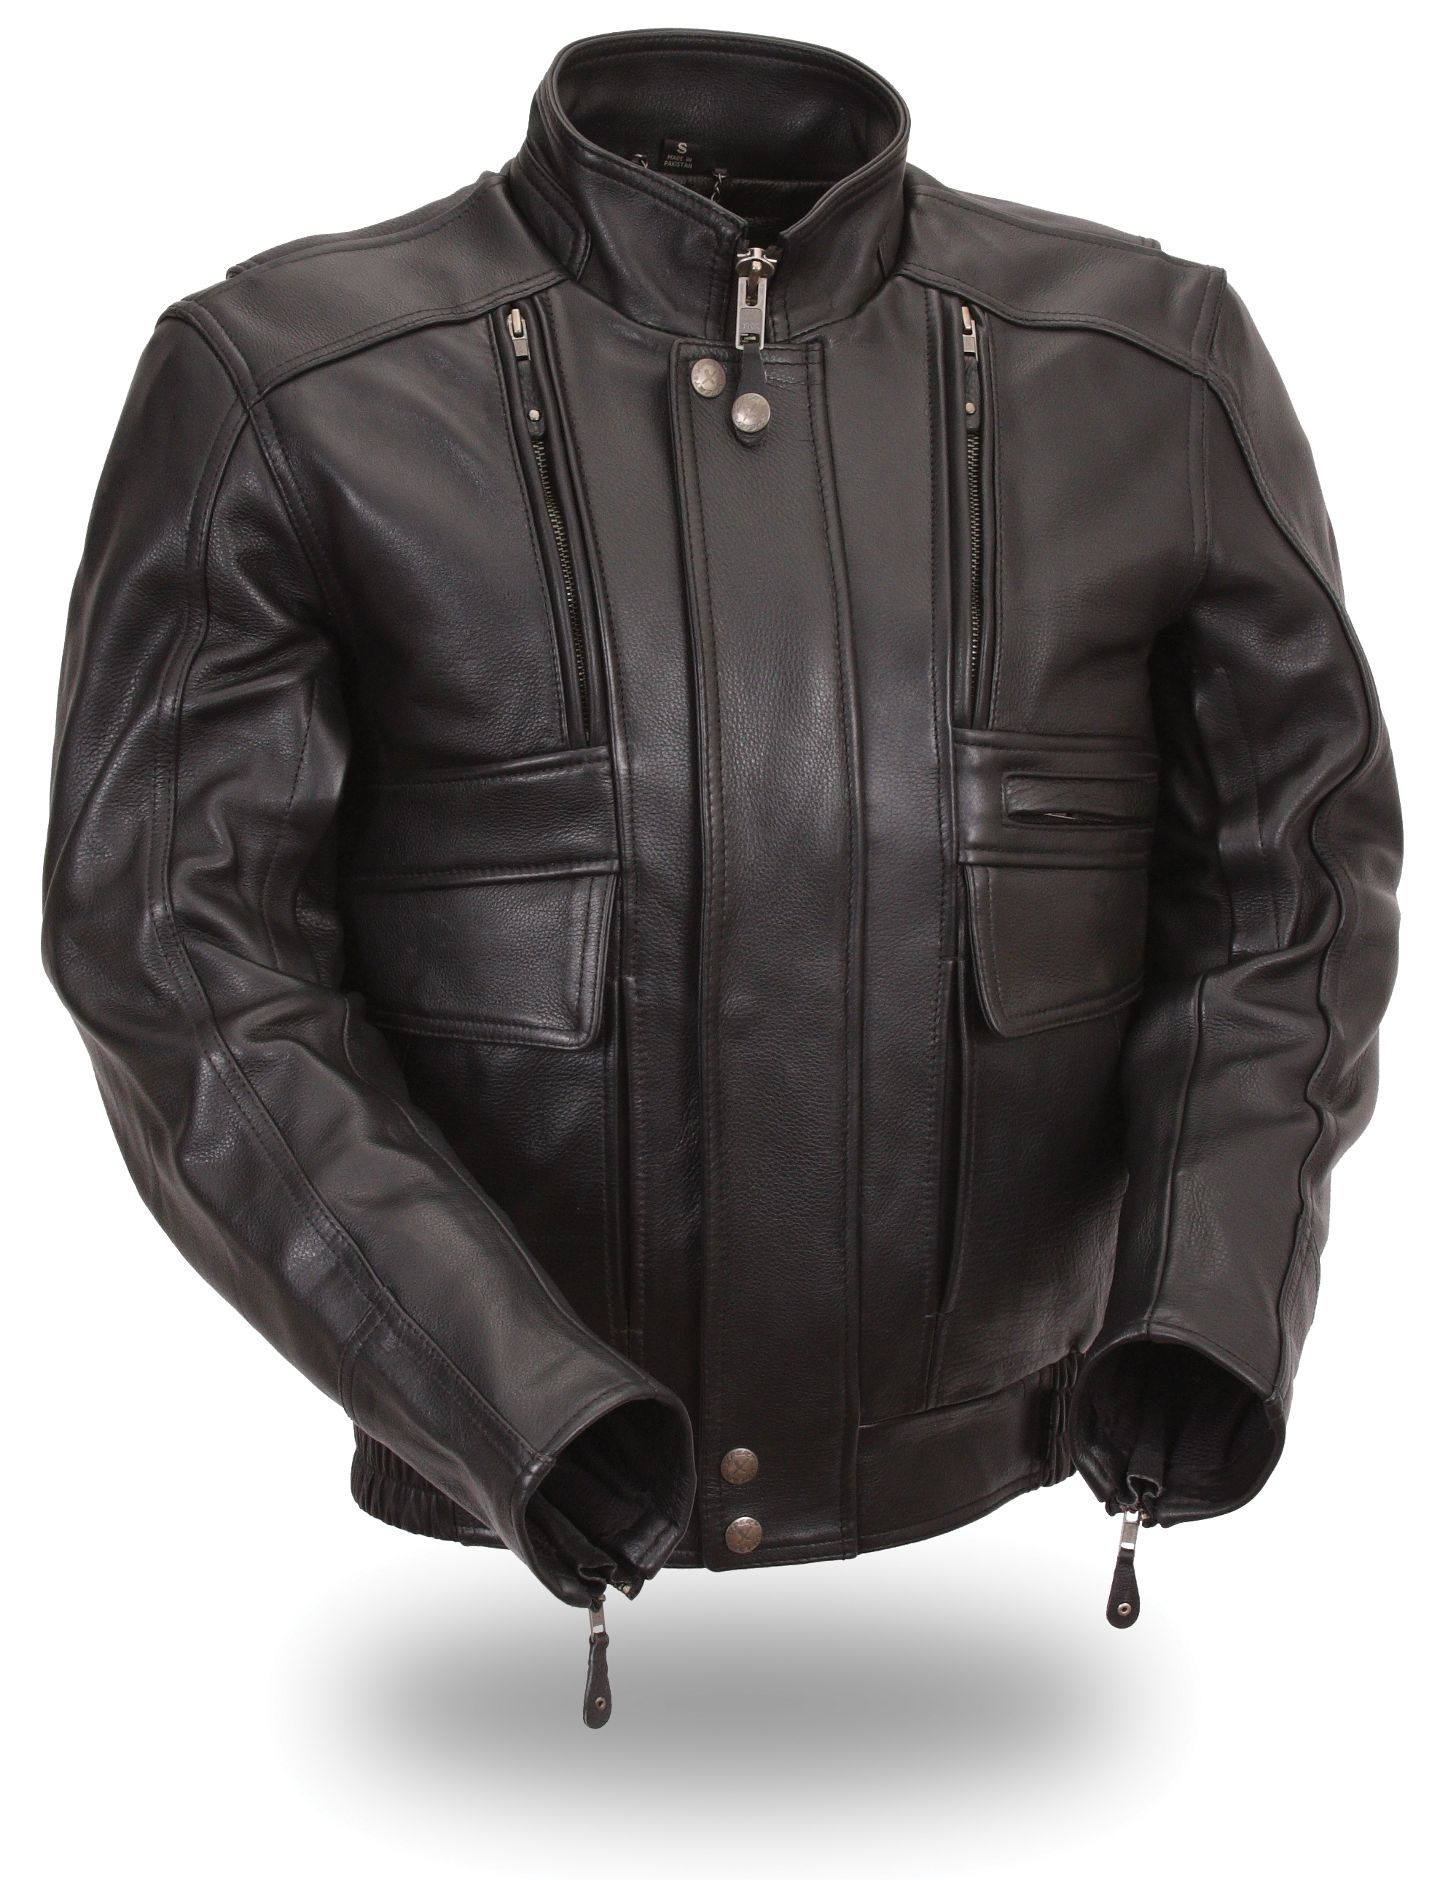 Mens Premium Naked Leather Motorcycle Jacket by First Mfg.  www.mymotorcycleclothing.com